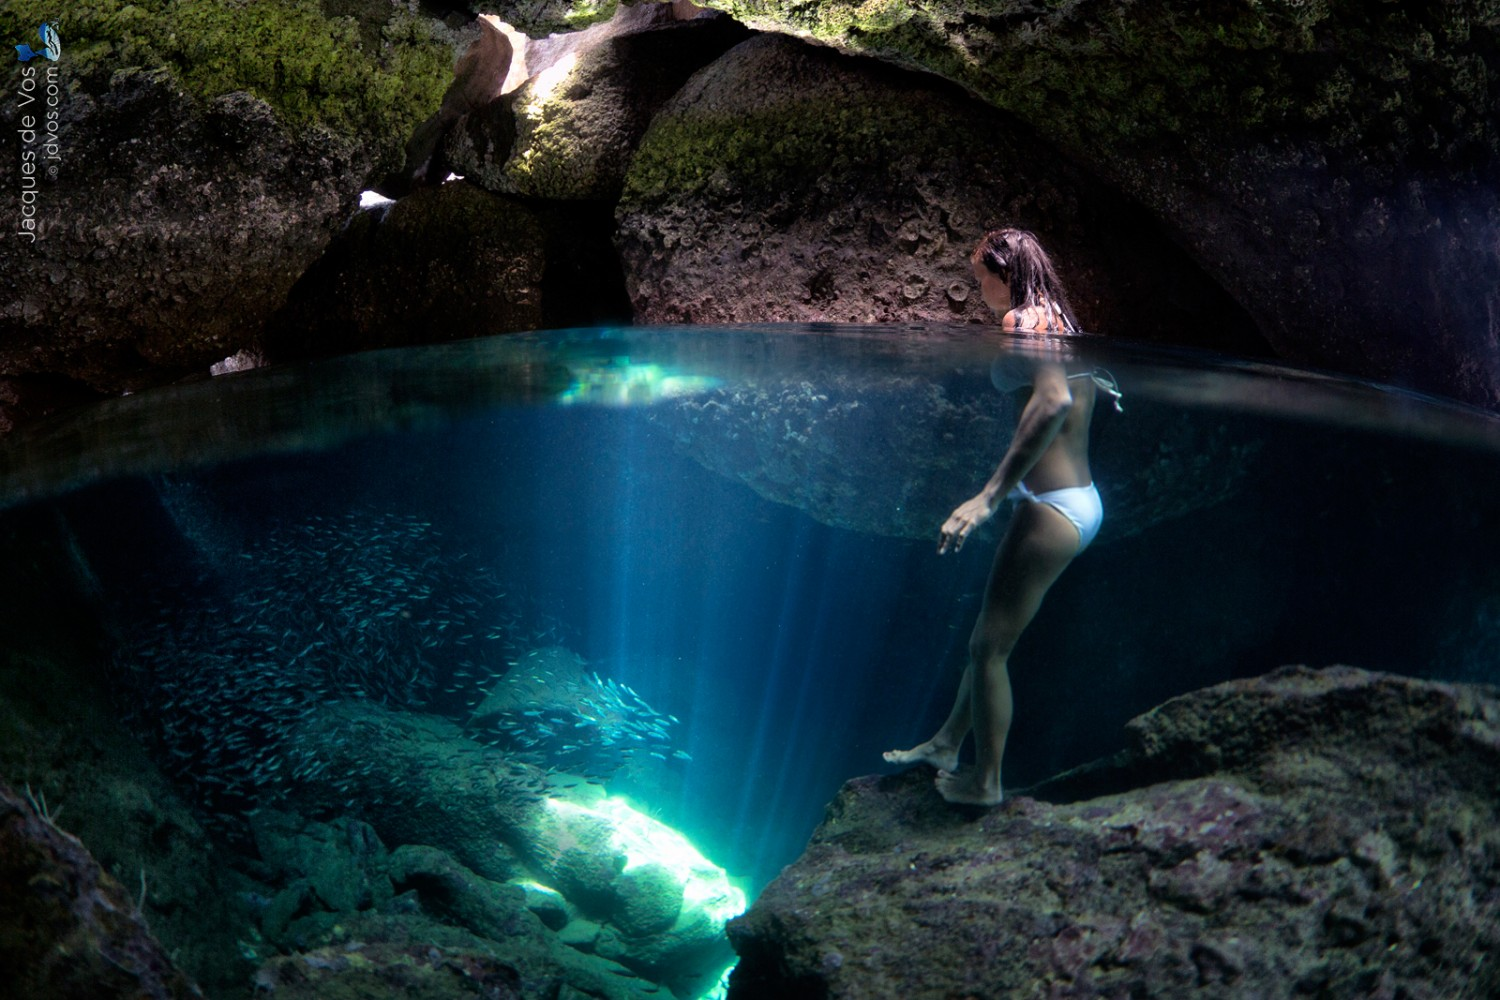 The Story Behind This Dreamy Underwater Cave Split-Shot